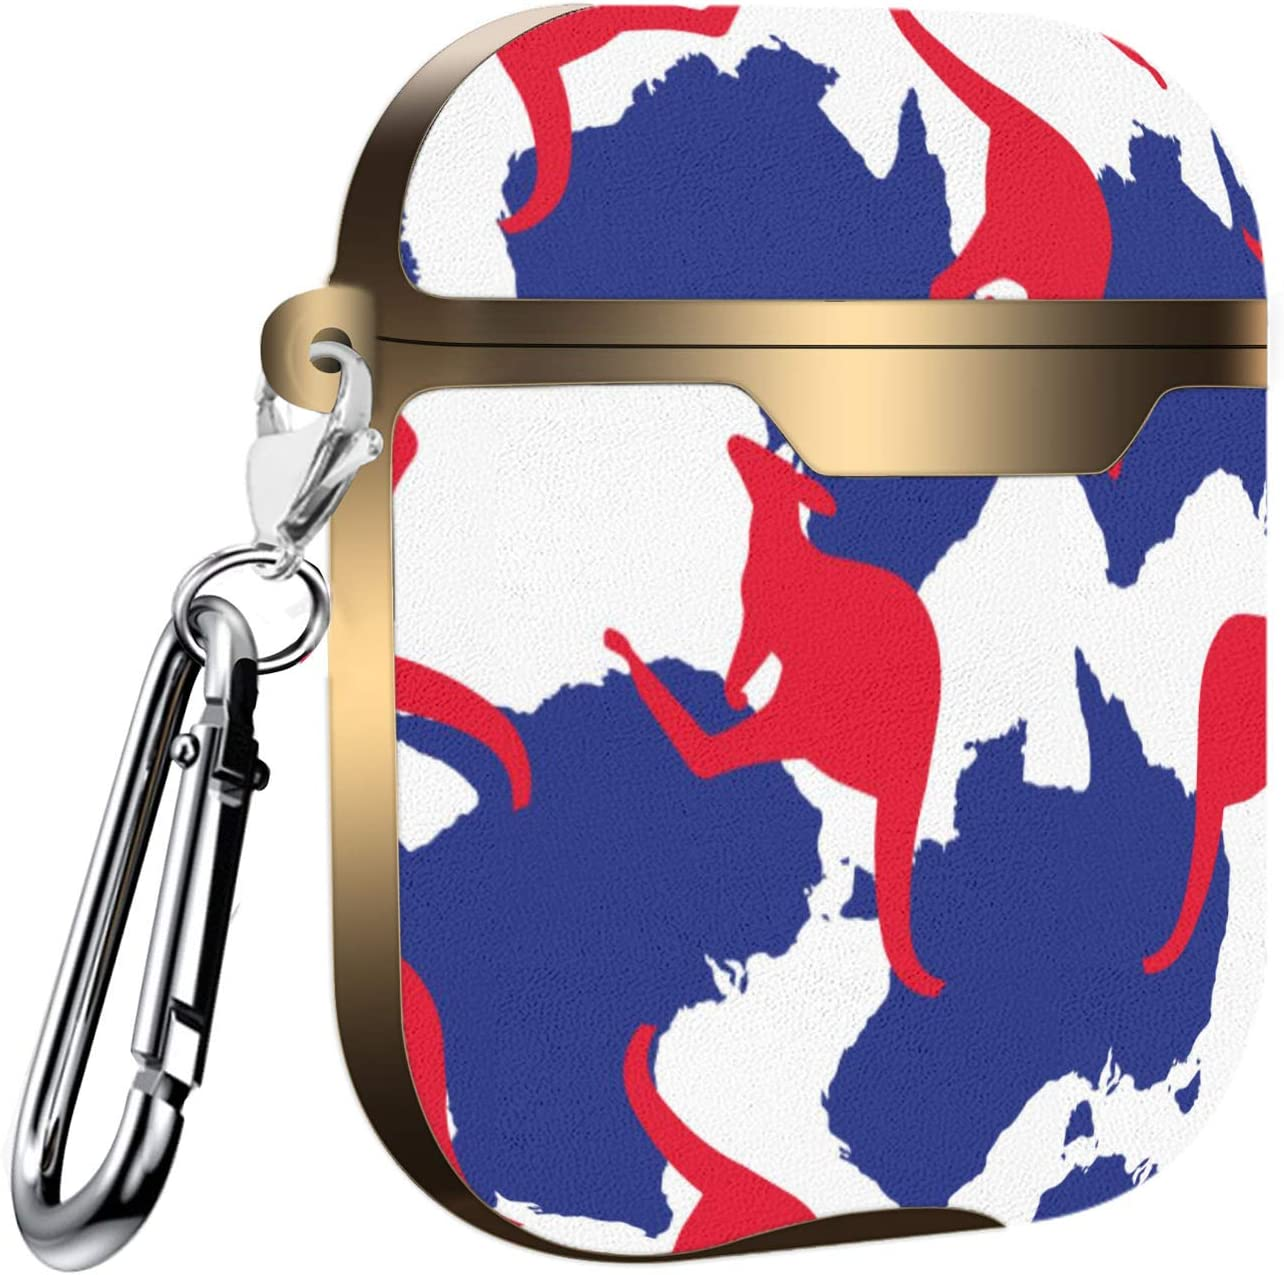 Slim Form Fitted Printing Pattern Cover Case with Carabiner Compatible with Airpods 1 and AirPods 2 Pattern of Australia Map and Kangaroo